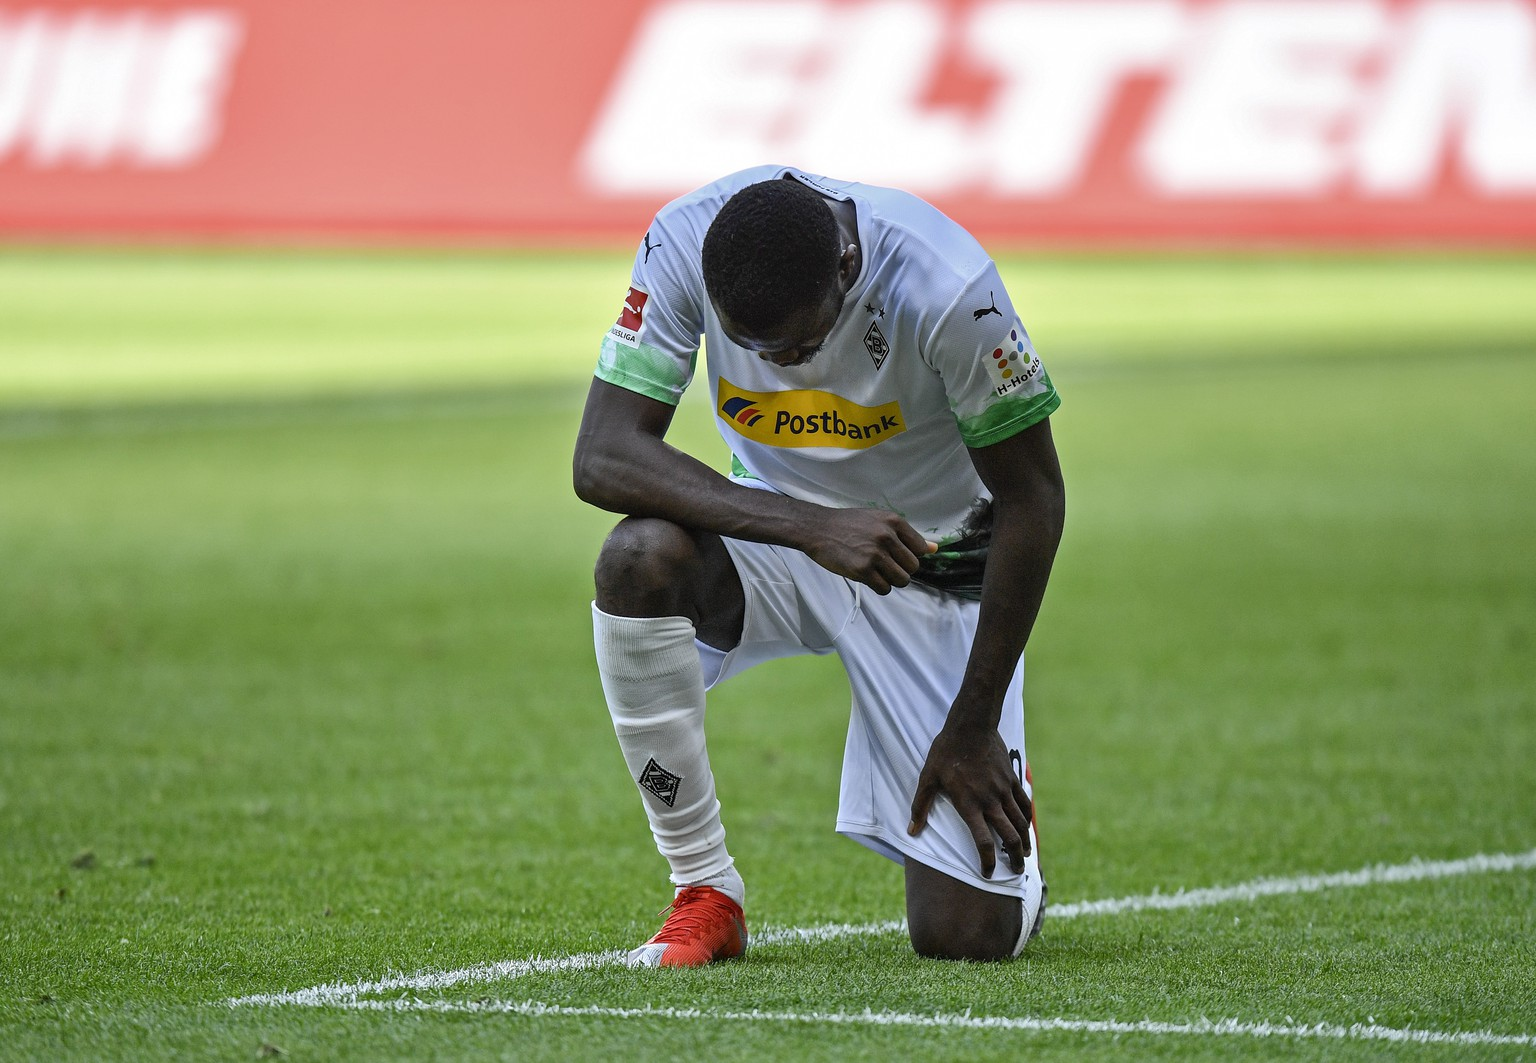 Moenchengladbach's Marcus Thuram taking the knee after scoring his side's second goal during the German Bundesliga soccer match between Borussia Moenchengladbach and Union Berlin in Moenchengladbach, Germany, Sunday, May 31, 2020. The German Bundesliga becomes the world's first major soccer league to resume after a two-month suspension because of the coronavirus pandemic. (AP Photo/Martin Meissner, Pool)